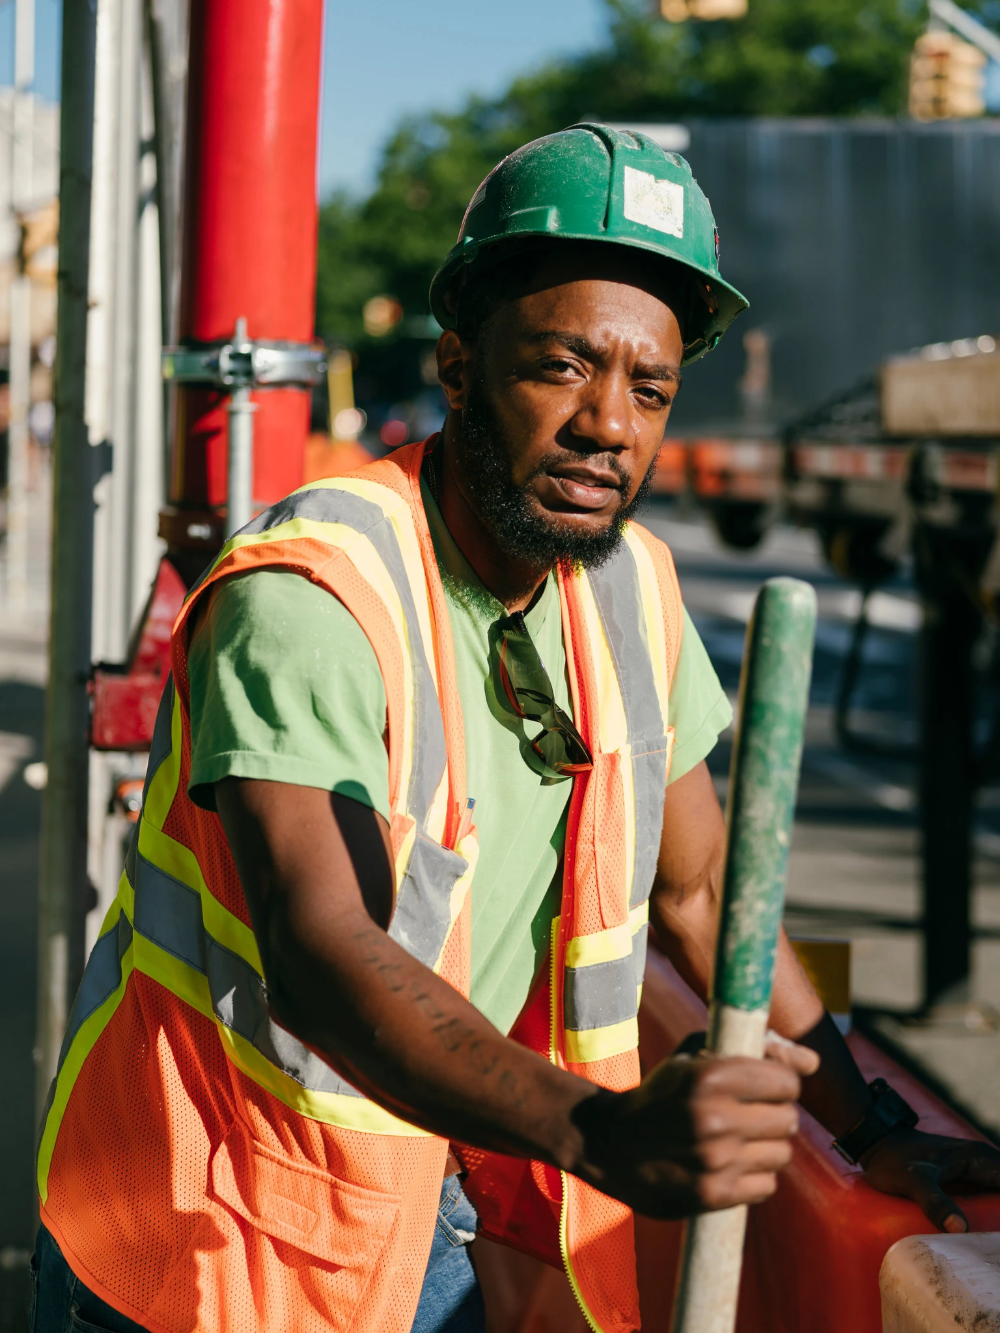 An ExConvict Got a Construction Job, but Not Everyone Was